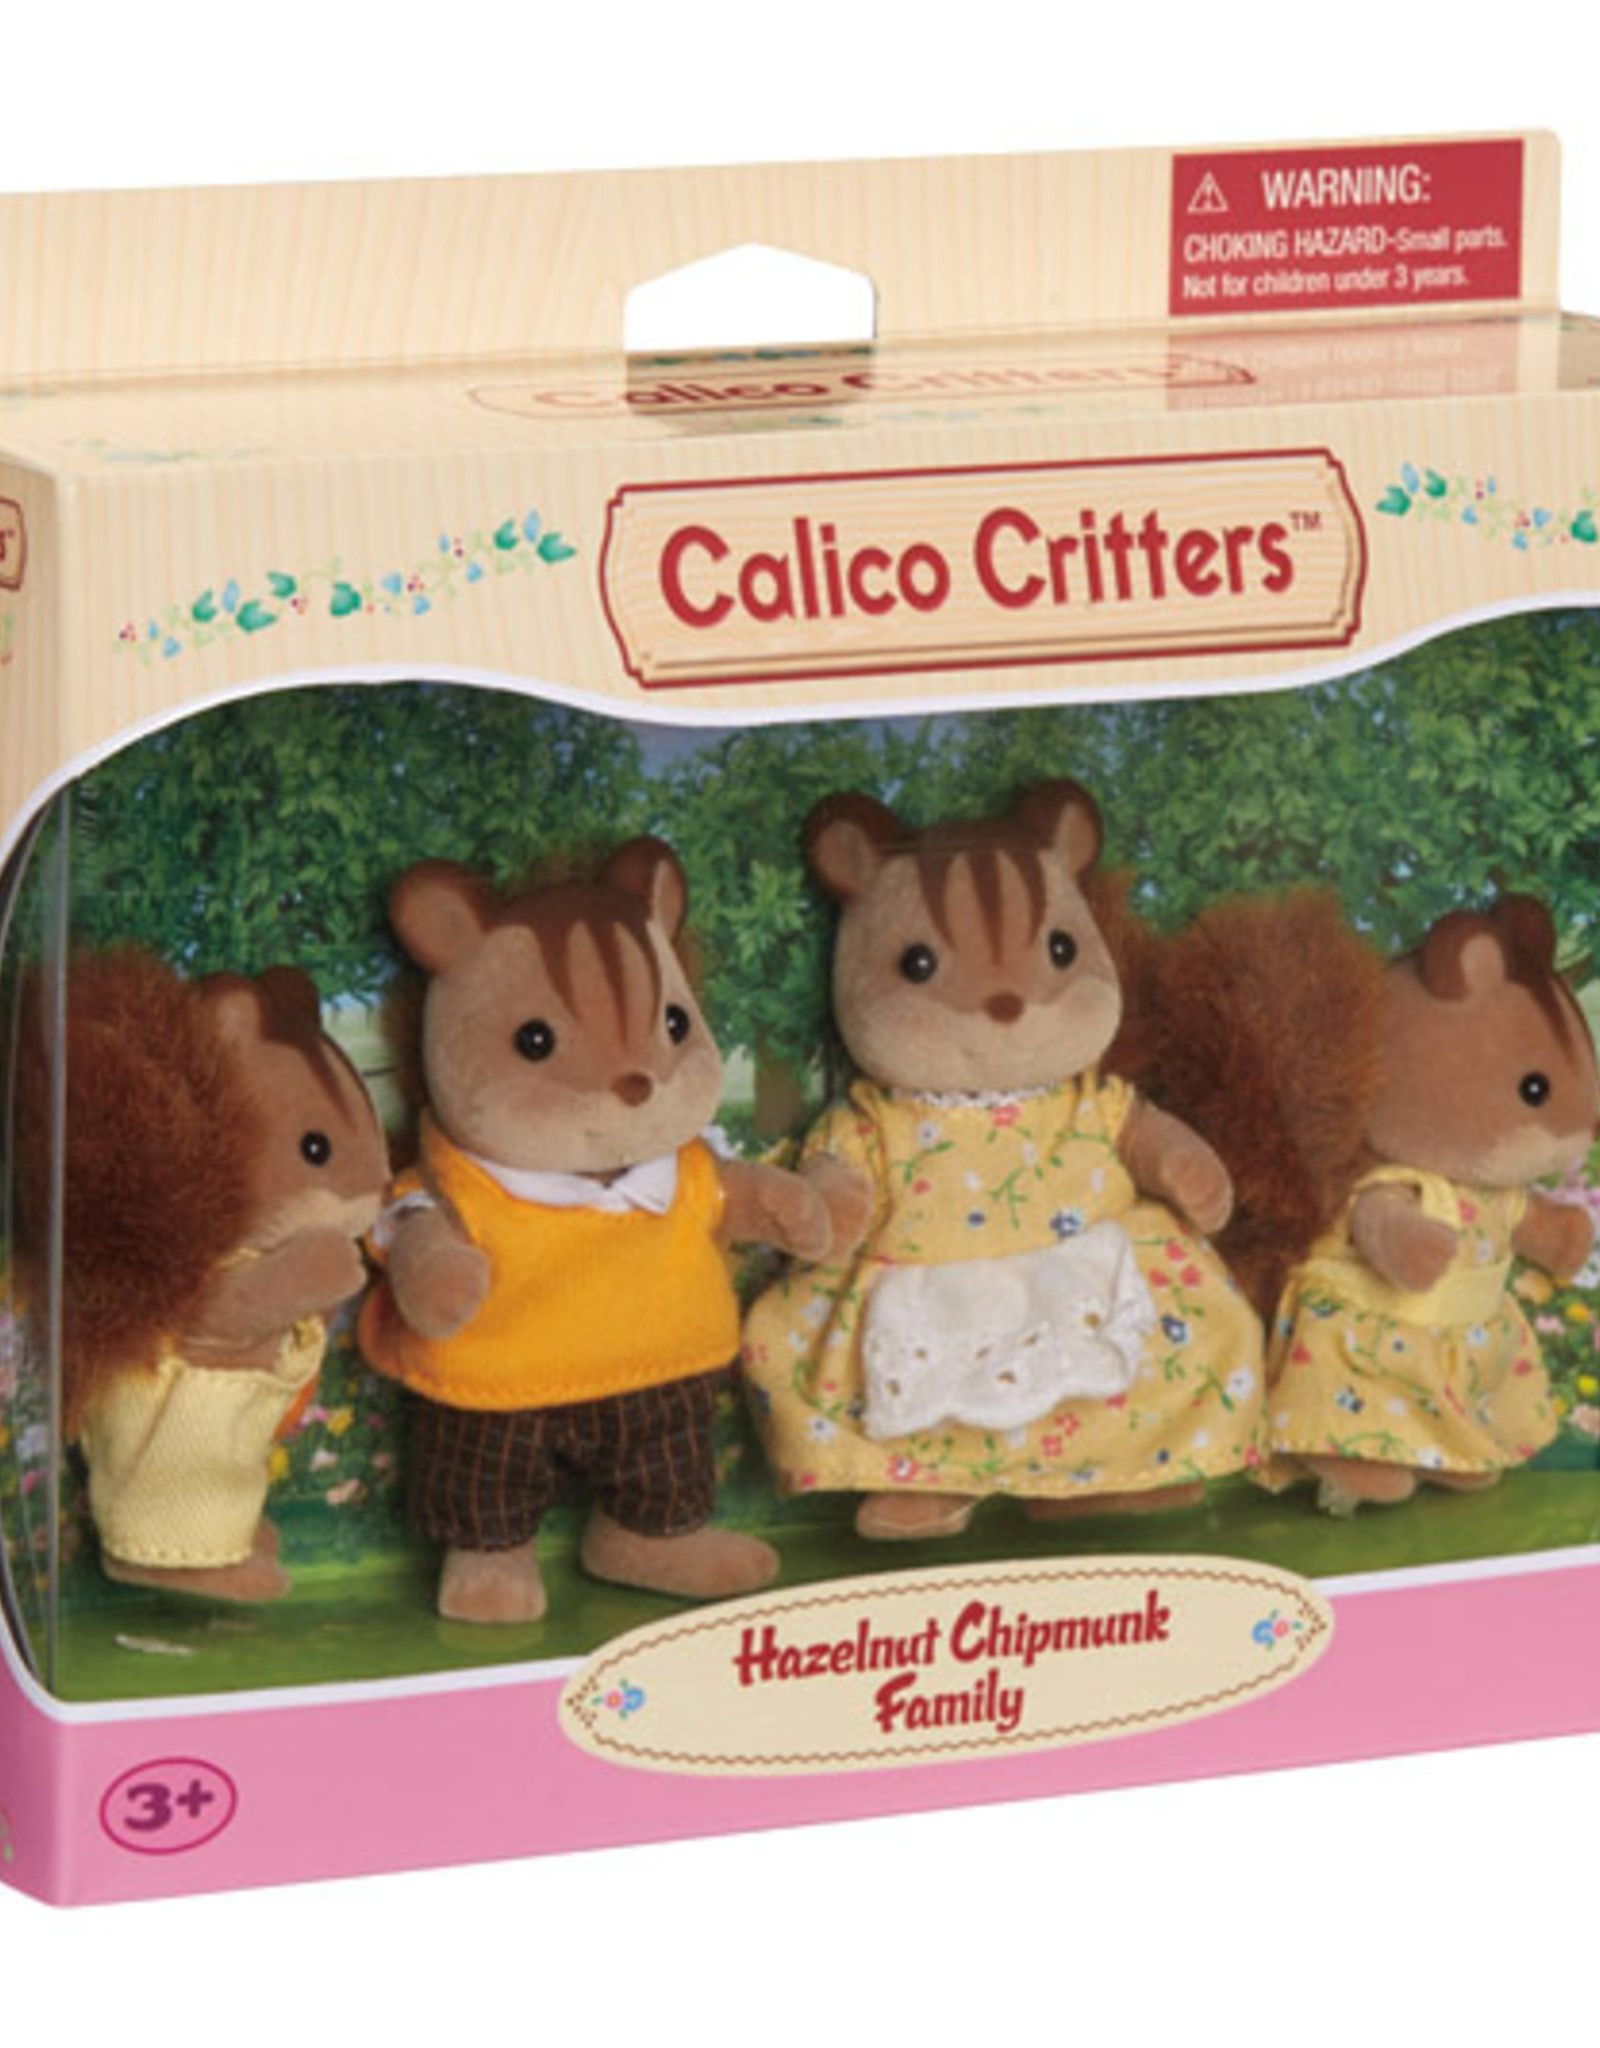 Calico Critters CC Hazelnut Chipmunk Family